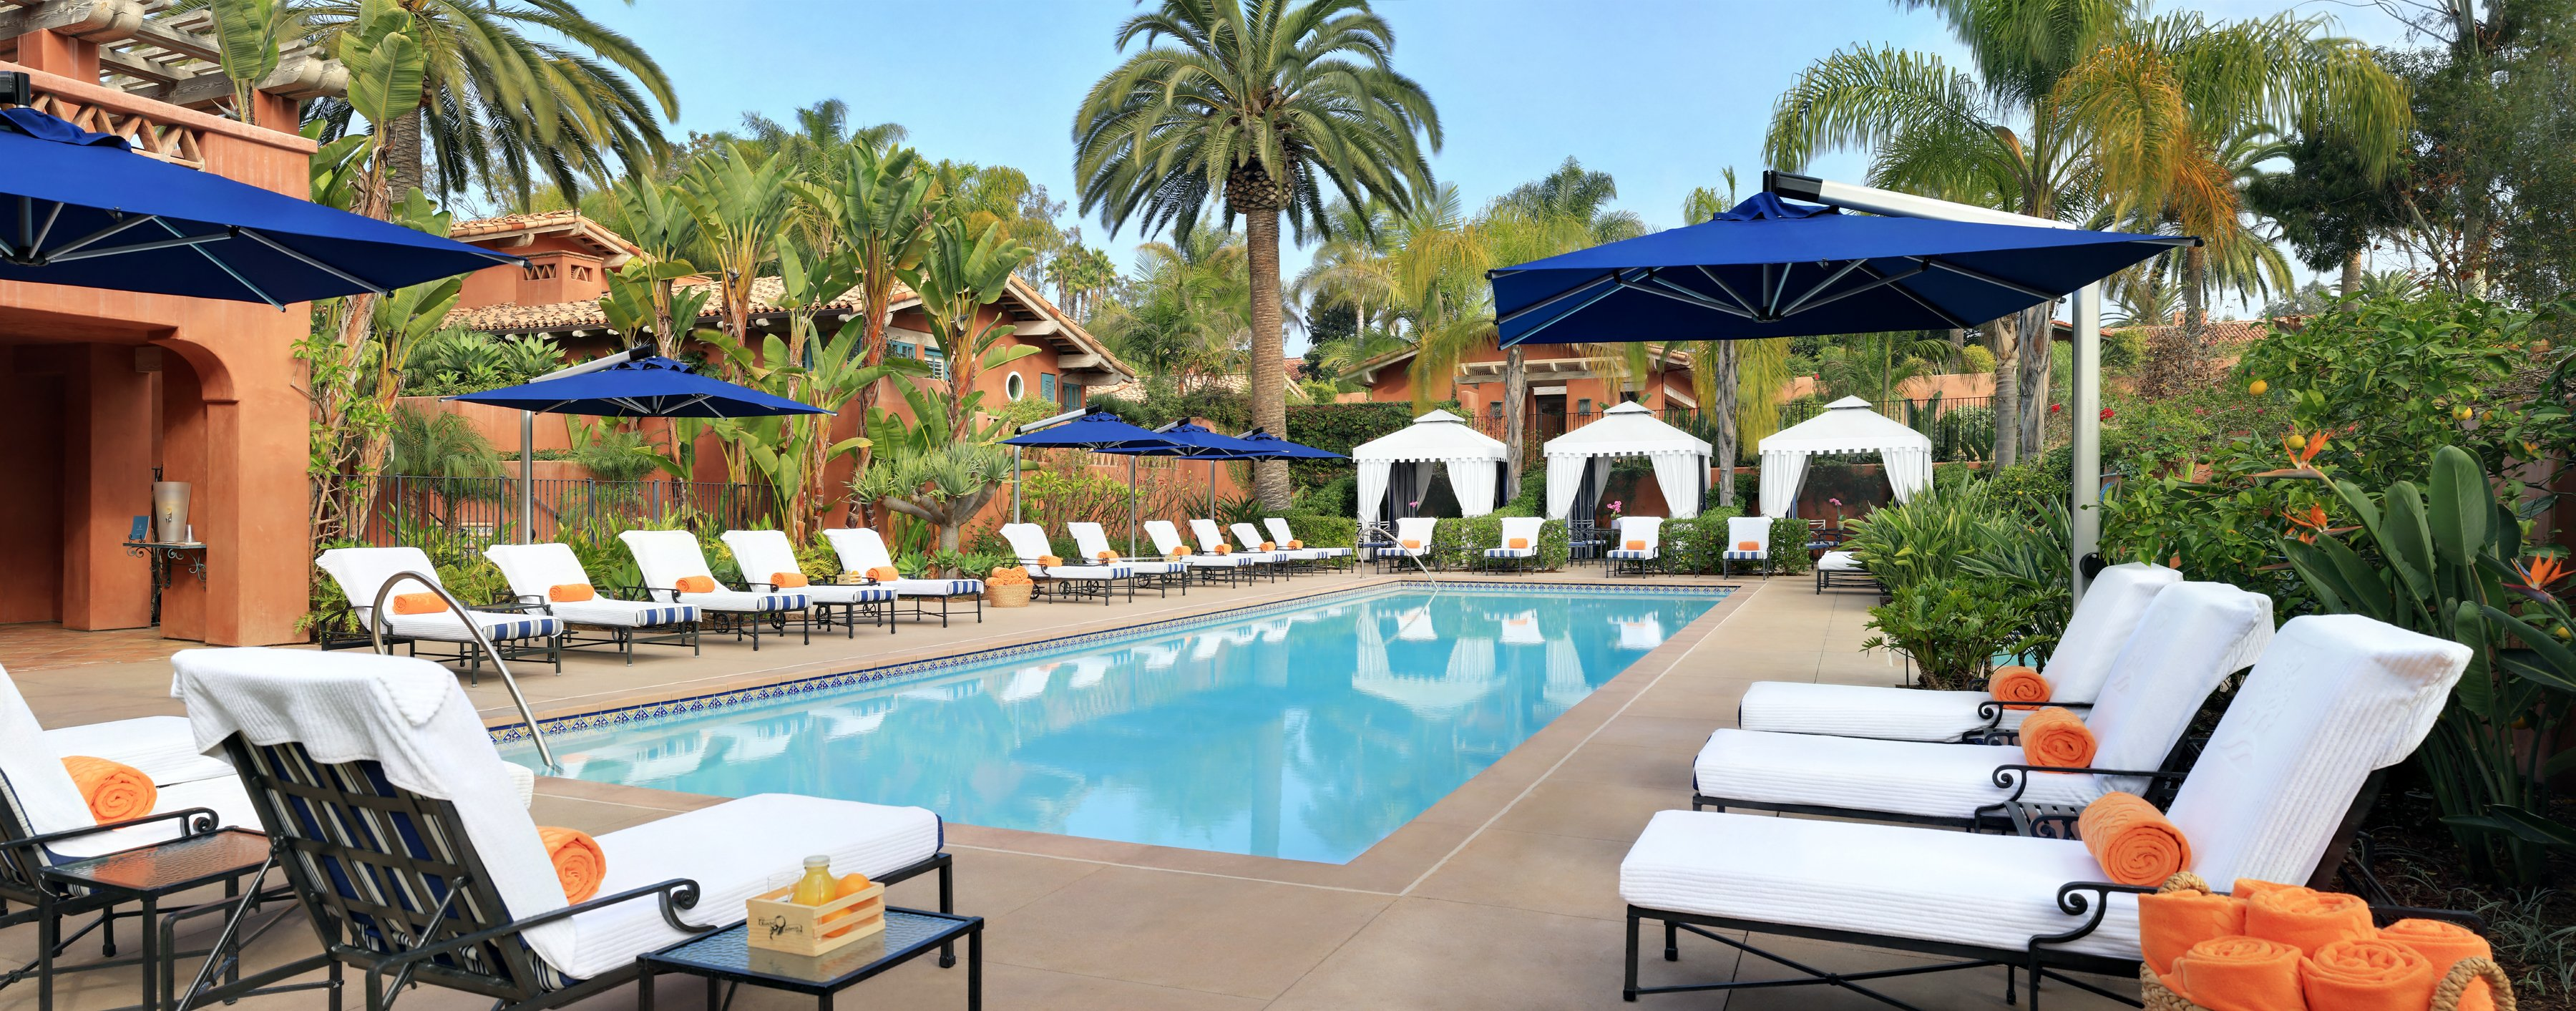 Rancho Valencia Spa Pool